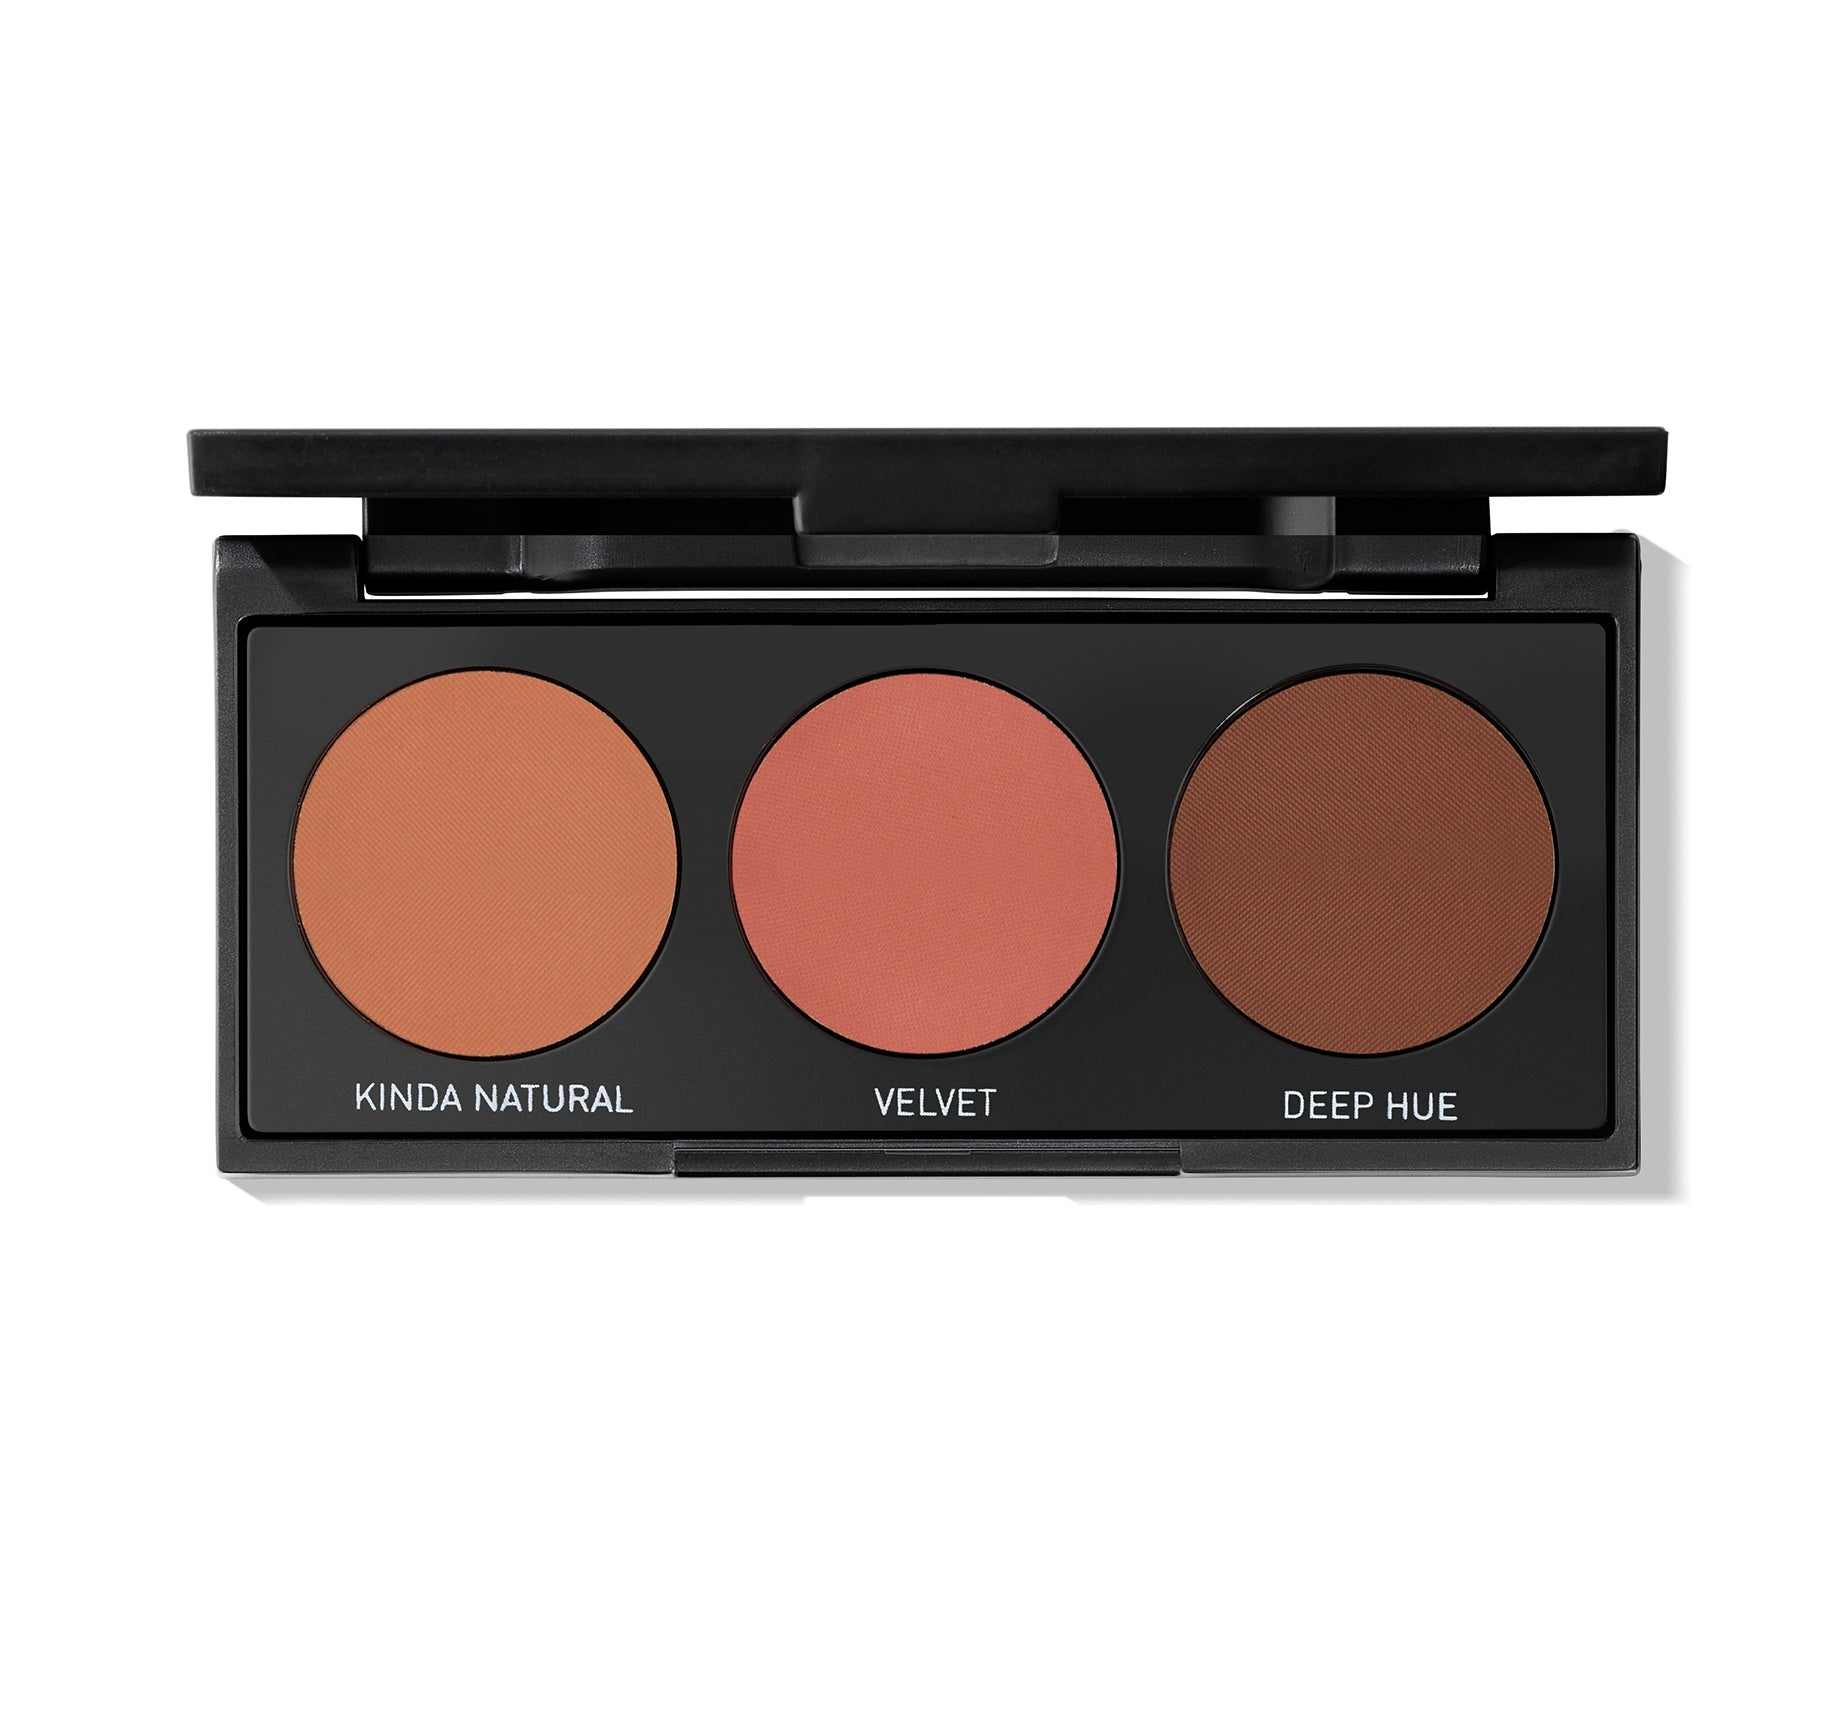 3B PURE NUDE EYESHADOW PALETTE, view larger image